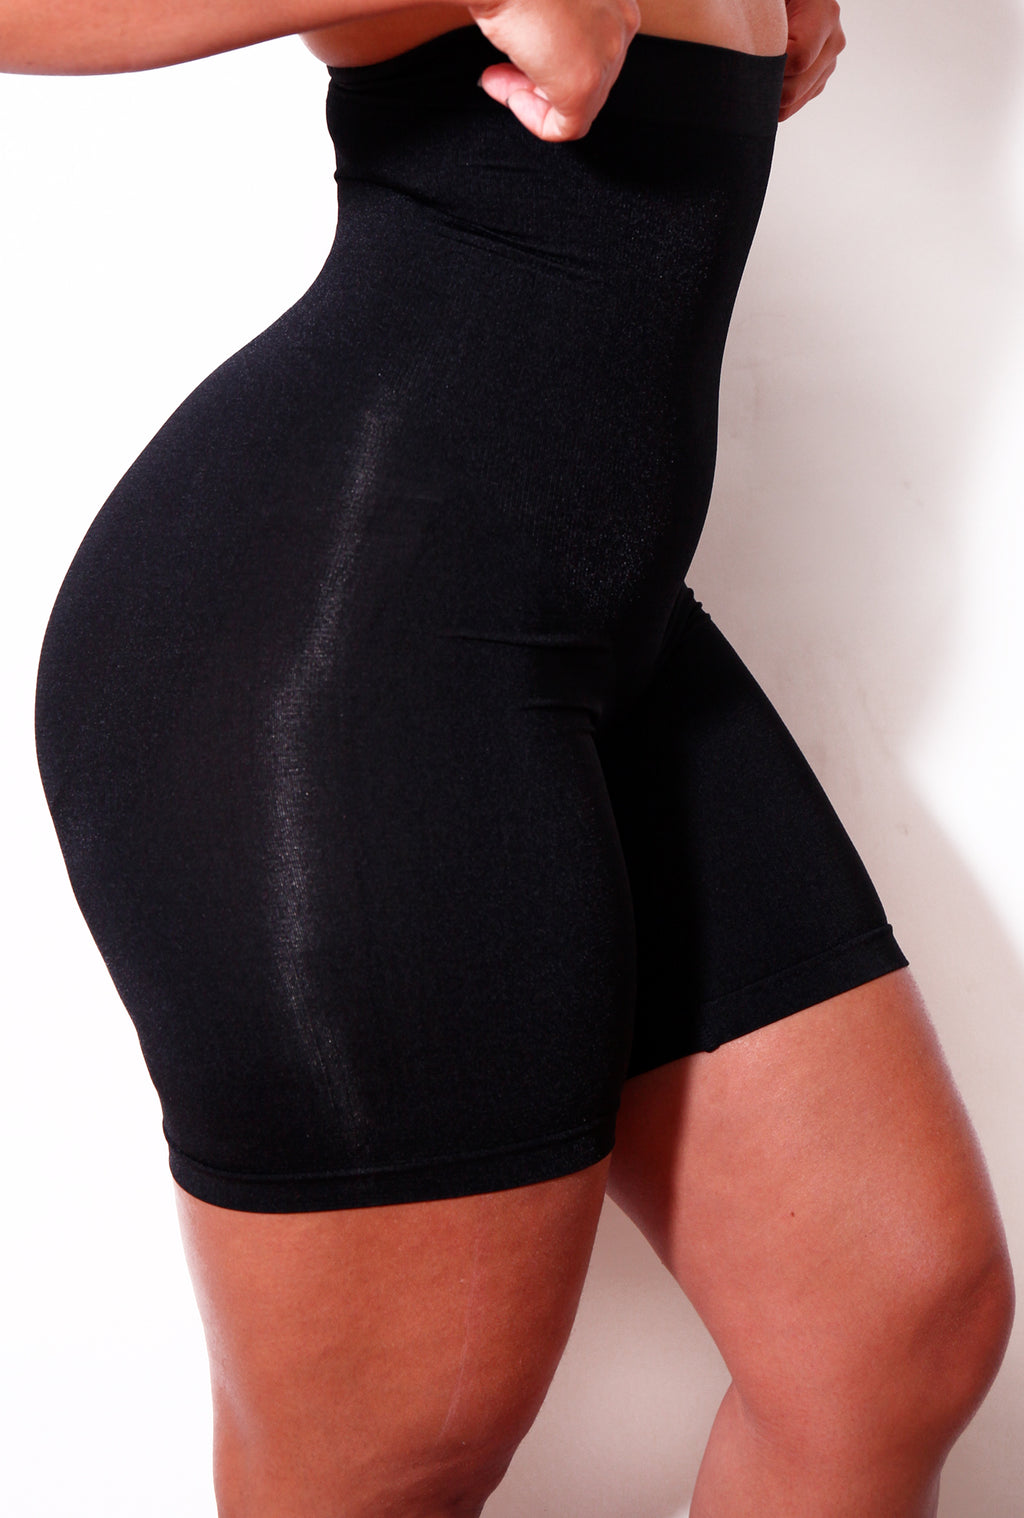 The High Waist Babe Shaper (2 Colors) - Babes And Felines | Specializing in Fashionable Staple Pieces for Every Shape and Size